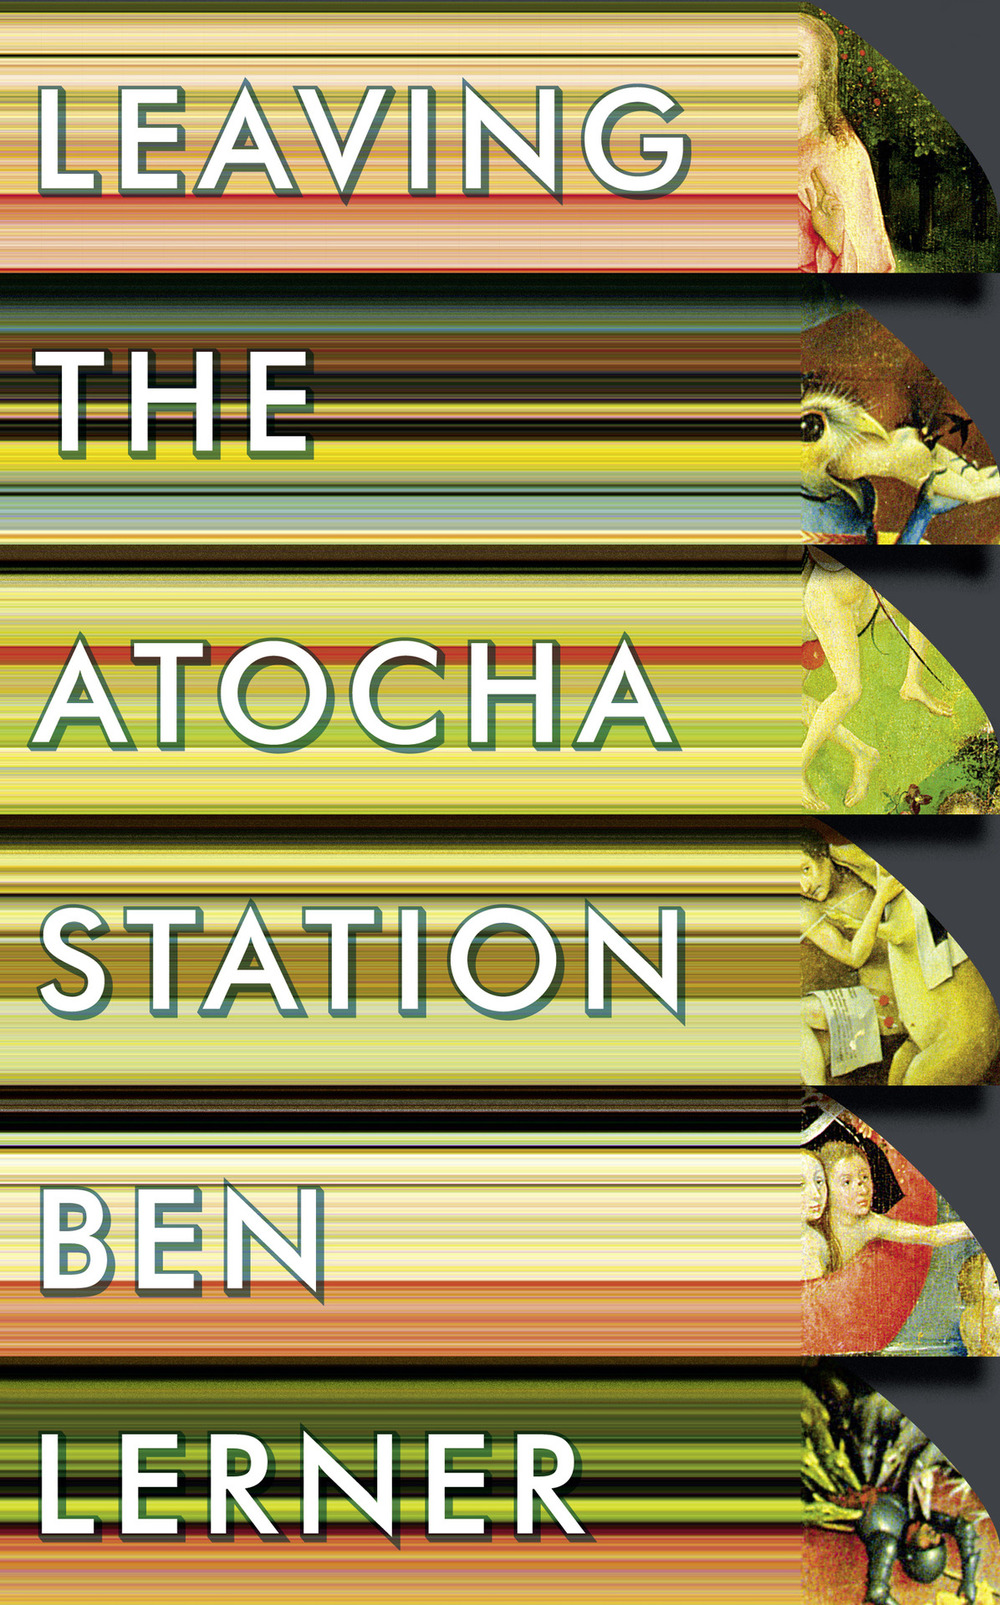 The final #Pixel manic cover for the @GrantaBooks edition of Leaving the Atocha Station. Design by Michael Salu.